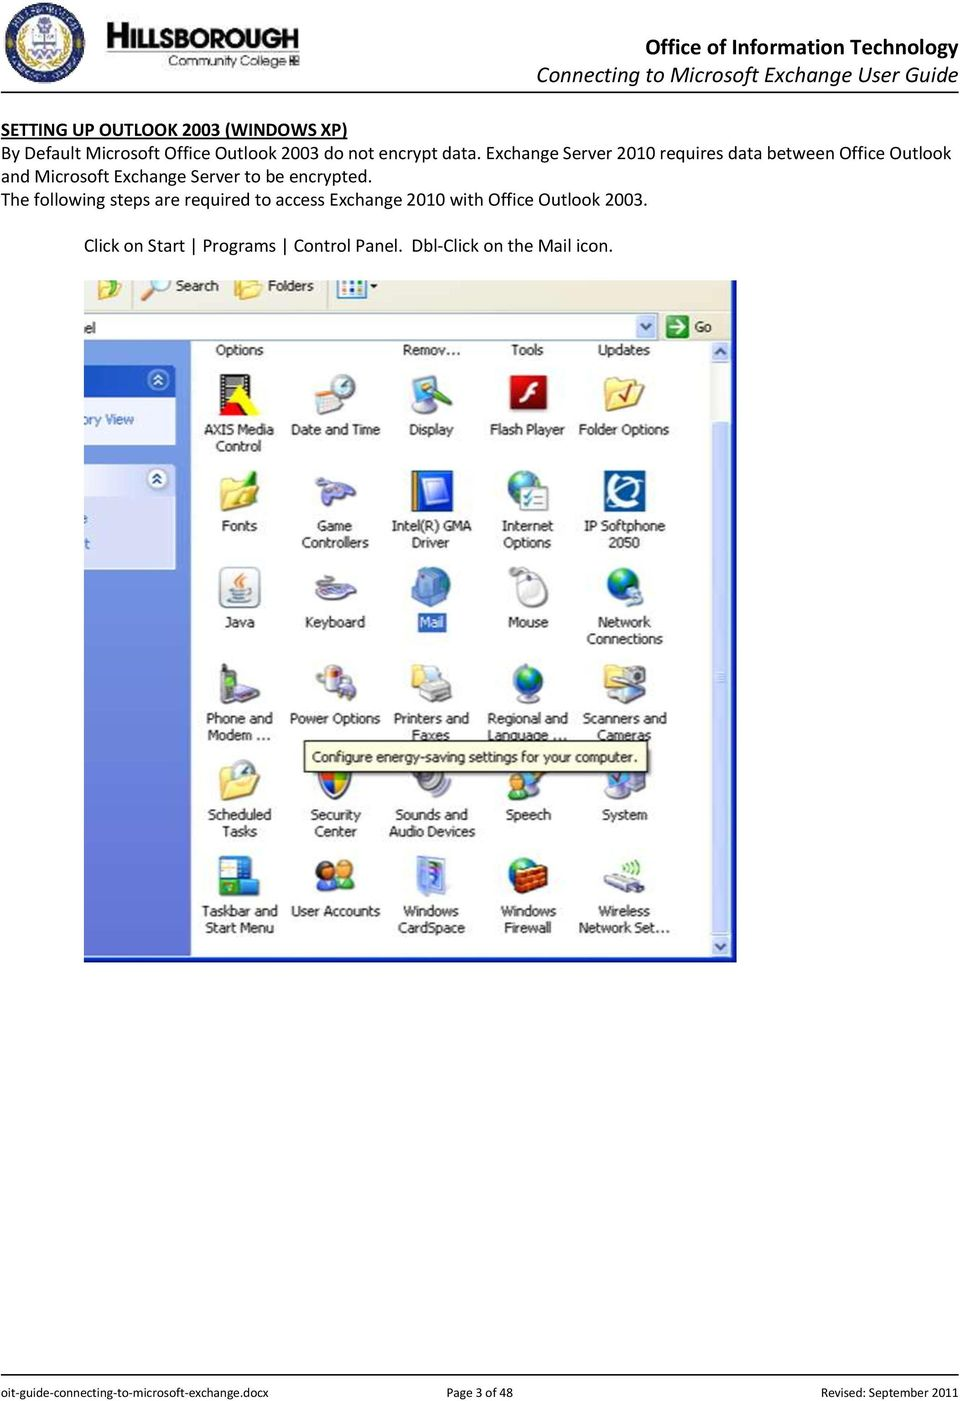 The following steps are required to access Exchange 2010 with Office Outlook 2003.